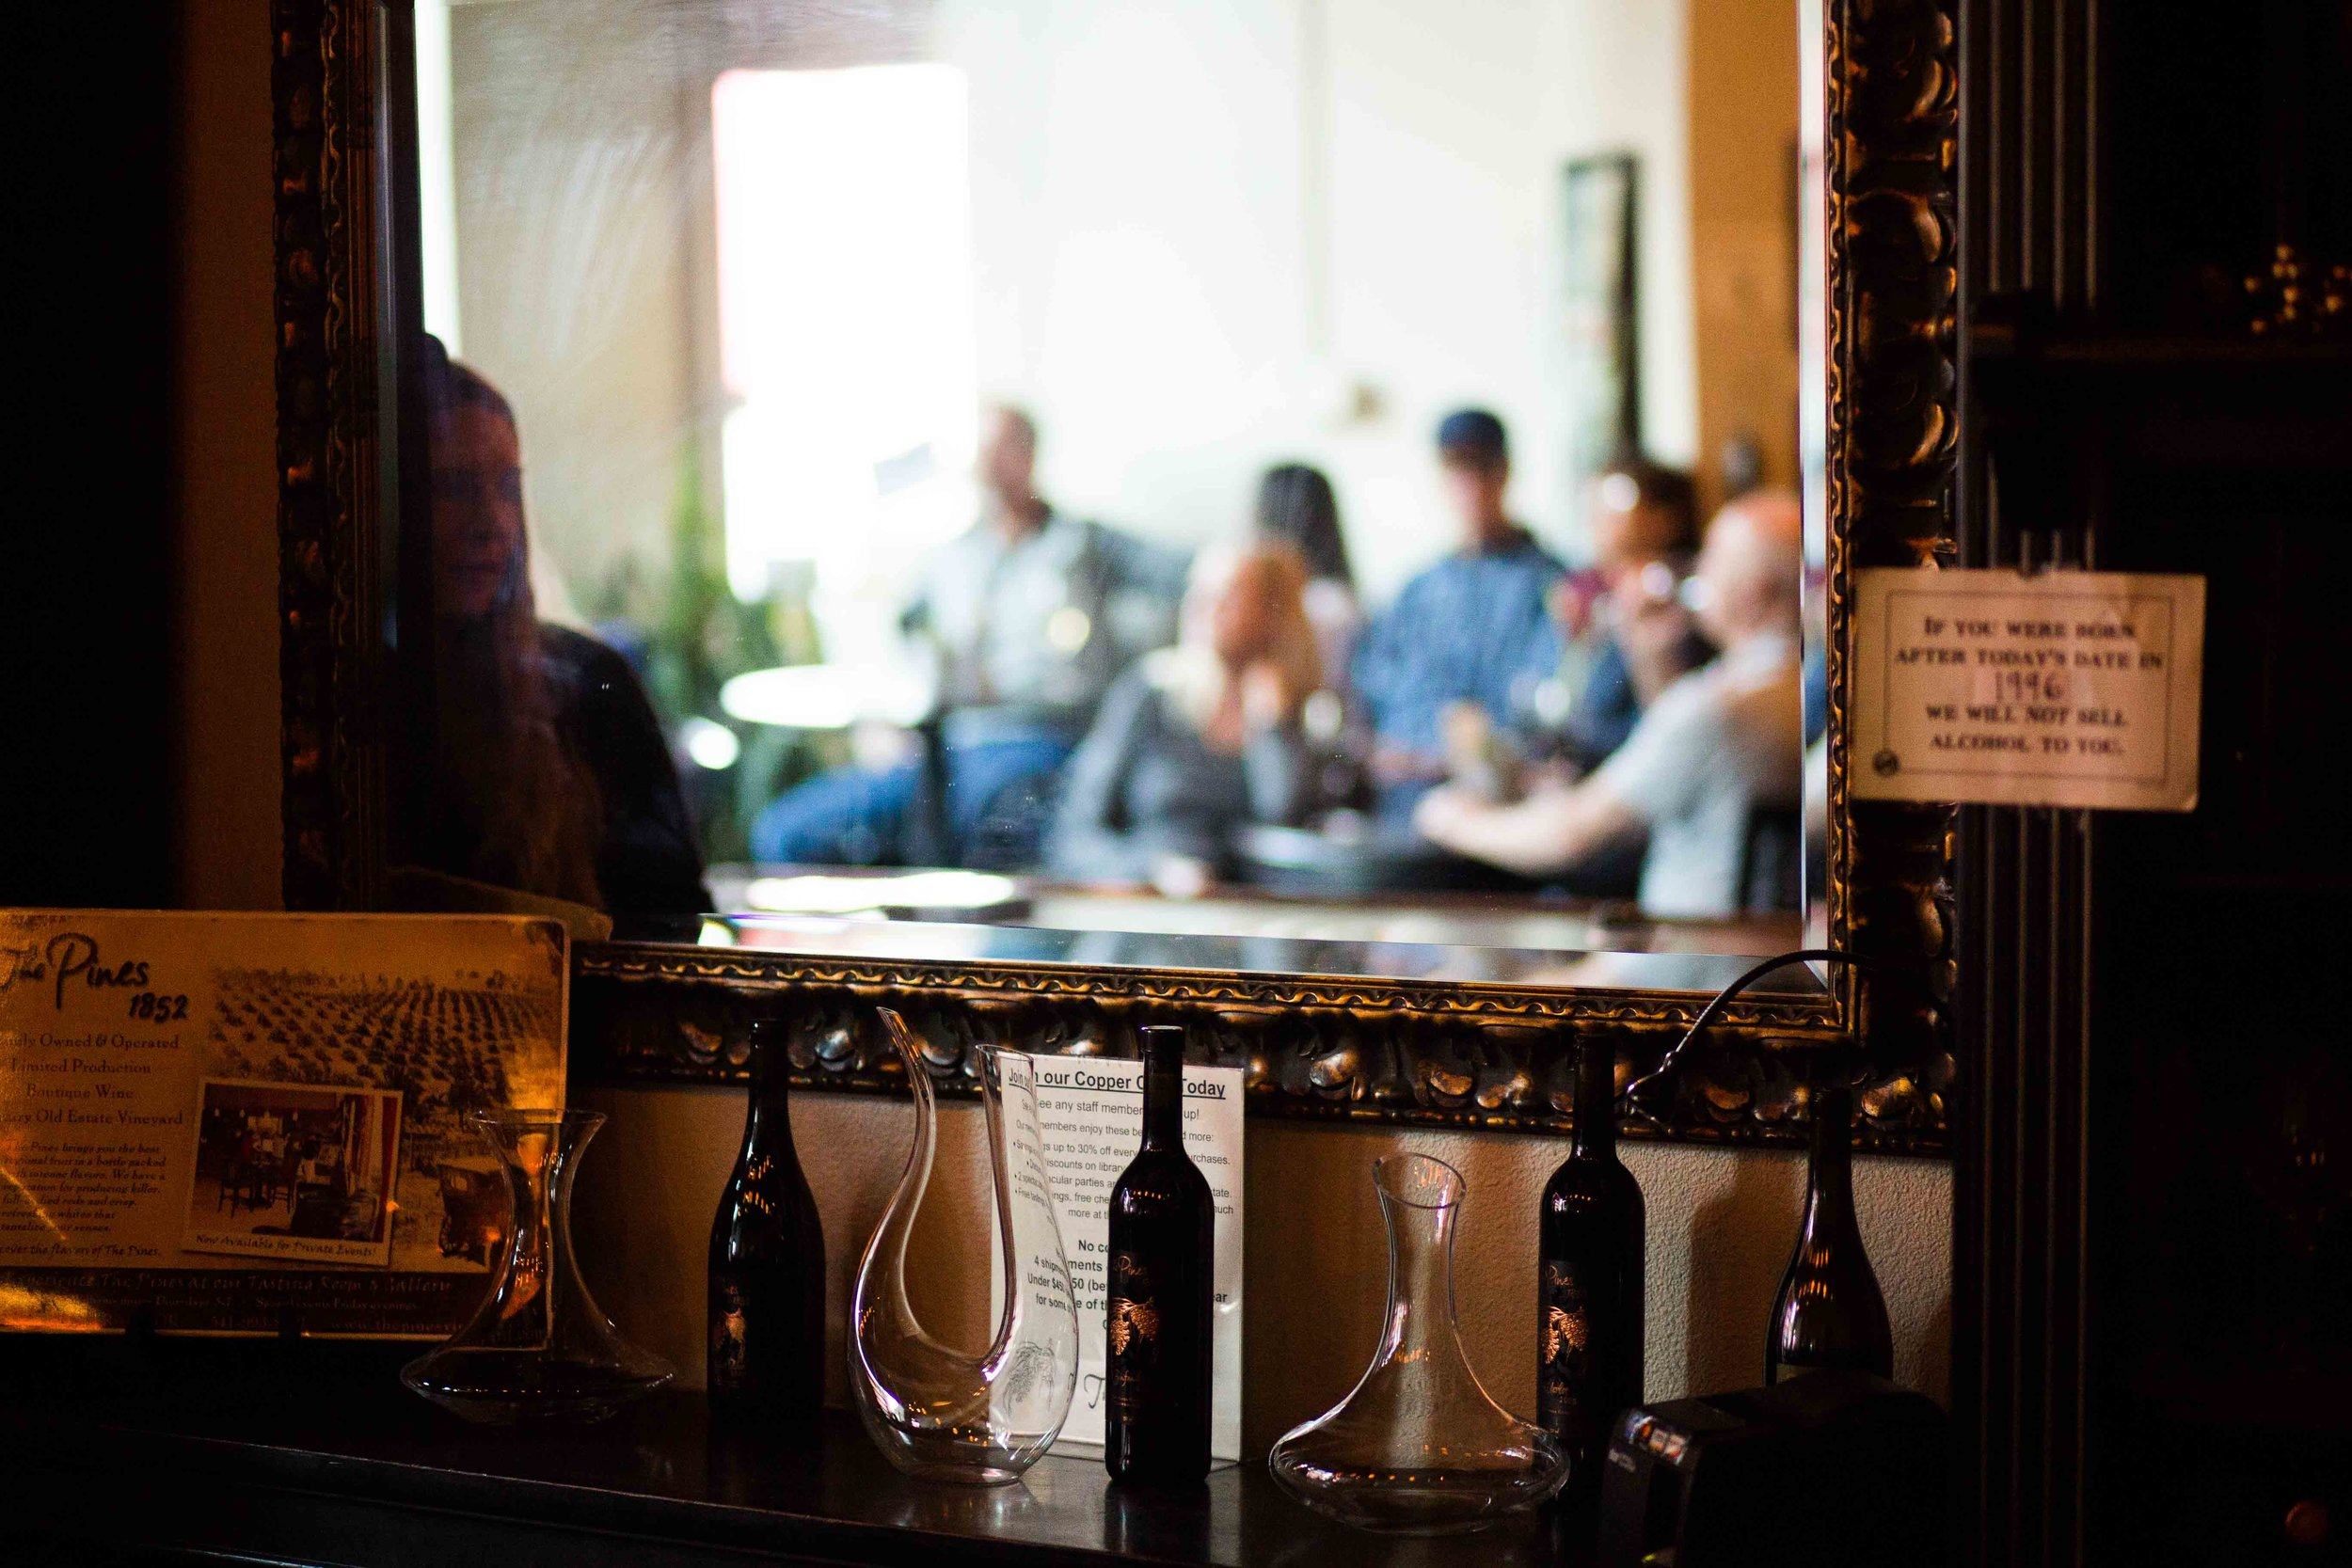 Hood River Downtown wine alliance Wineries of the columbia gorge wine walk downtown-31.jpg